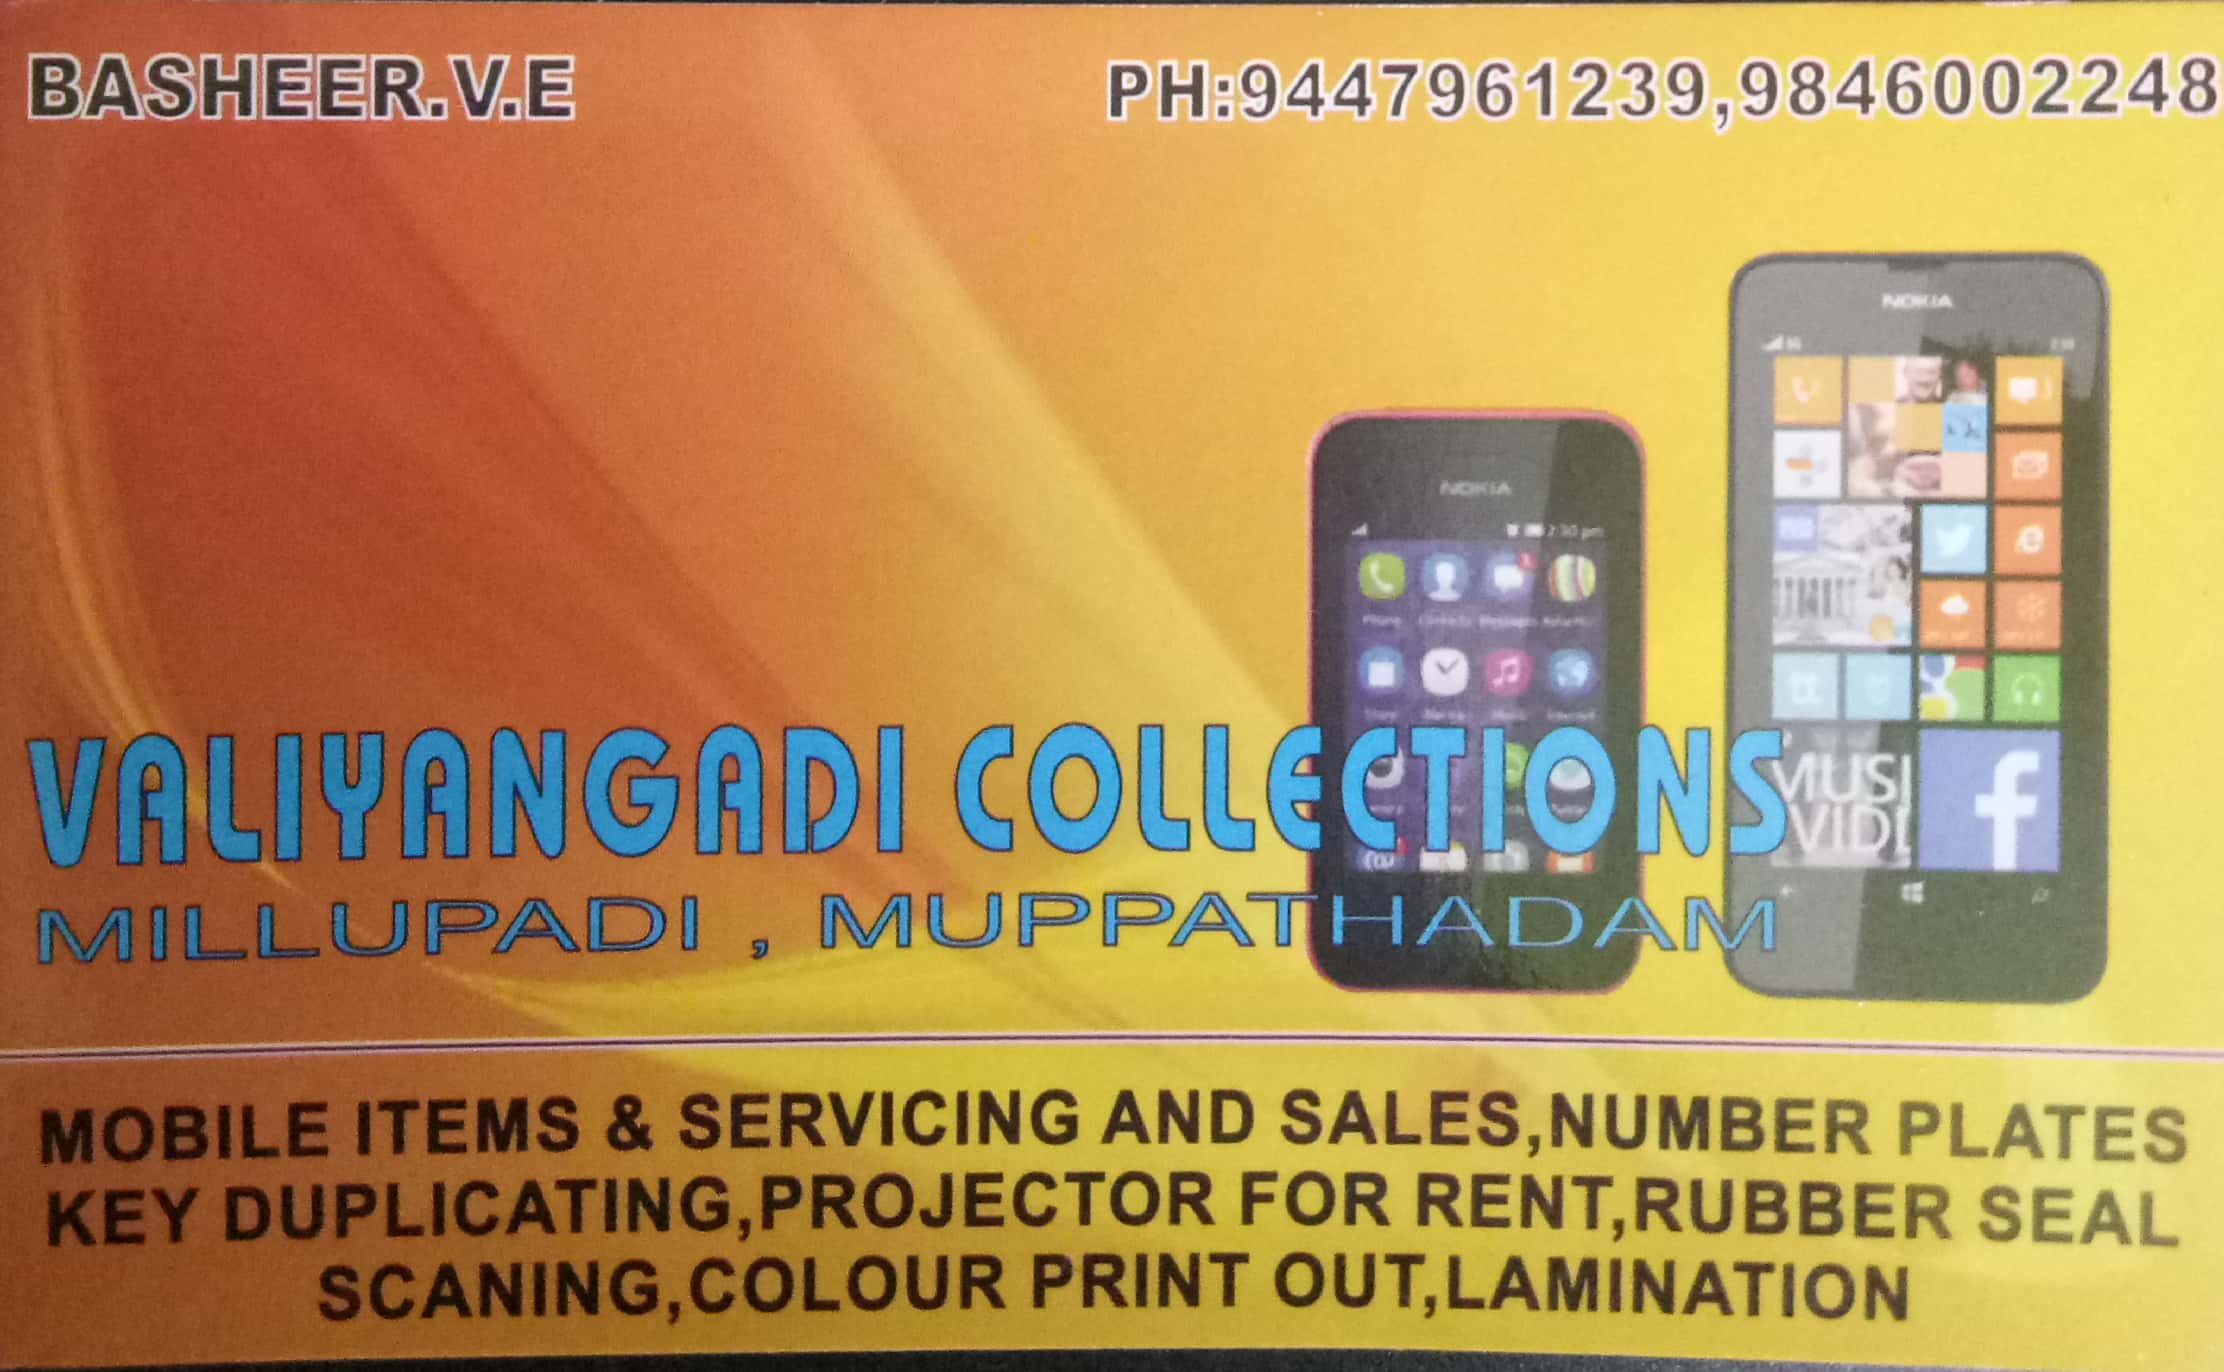 VALIYANGADI COLLECTIONS, KEY DUPLICATING AND NUMBER PLATE,  service in Aluva, Ernakulam